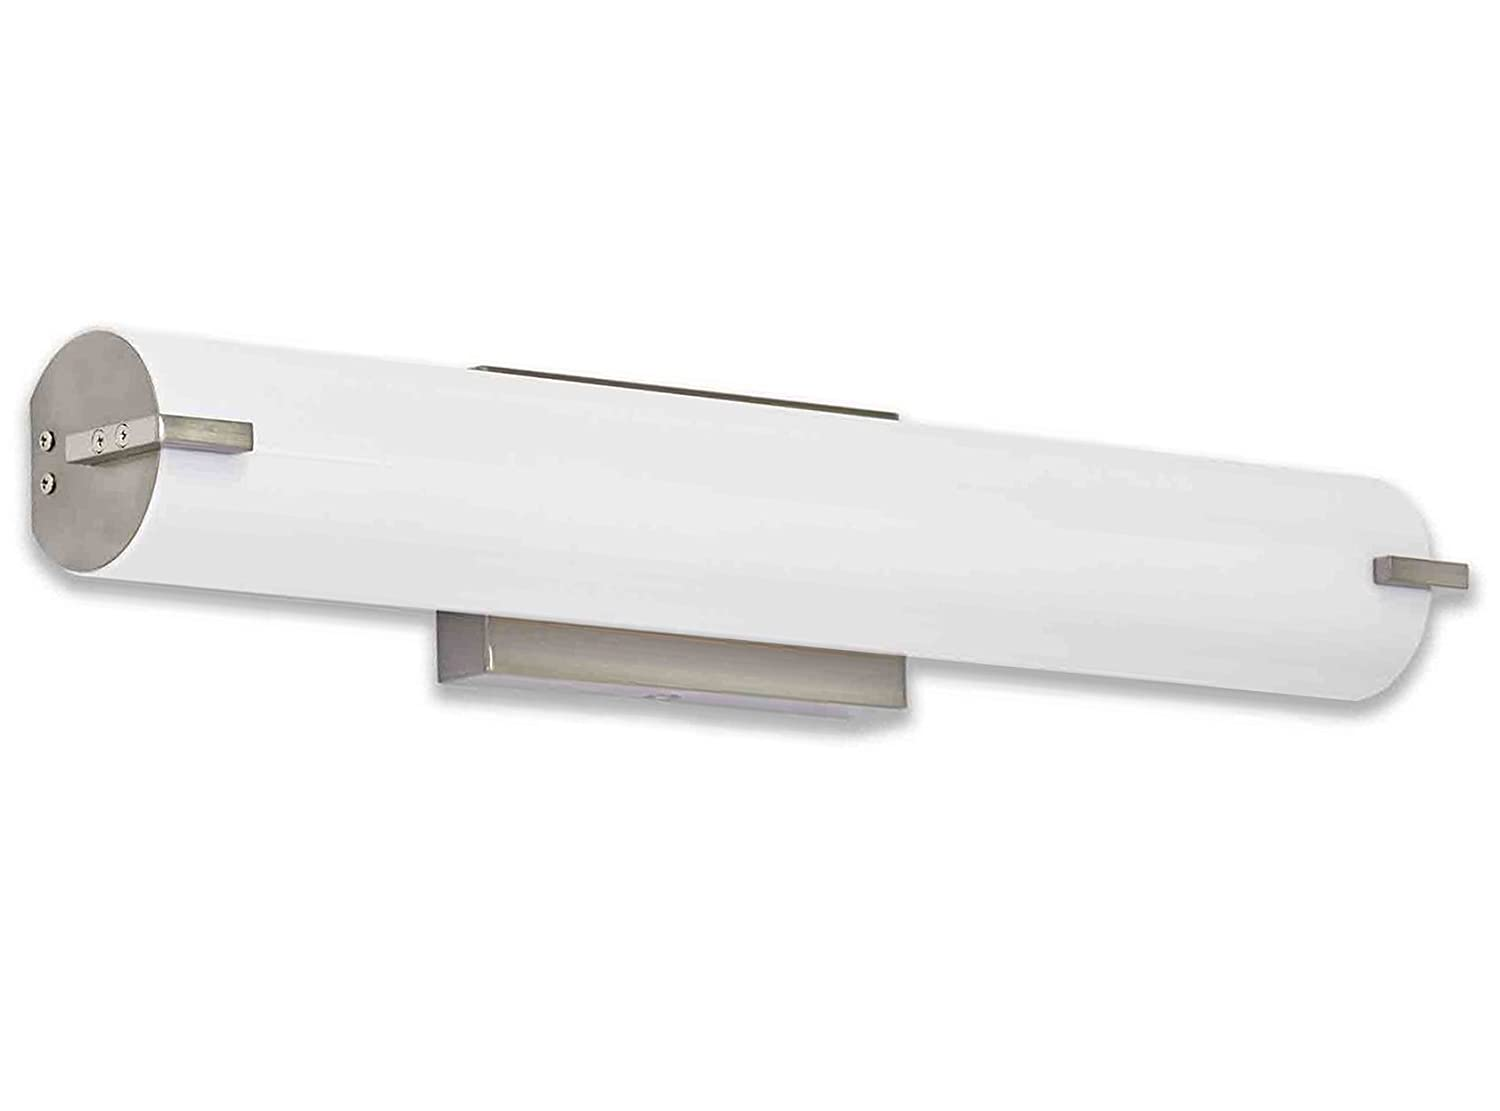 NEW Modern Frosted Bathroom Vanity Light Fixture   Contemporary Sleek  Dimmable LED Cylinder Bar Design   Vertical or Horizontal Tube with Brushed  Nickel. NEW Modern Frosted Bathroom Vanity Light Fixture   Contemporary